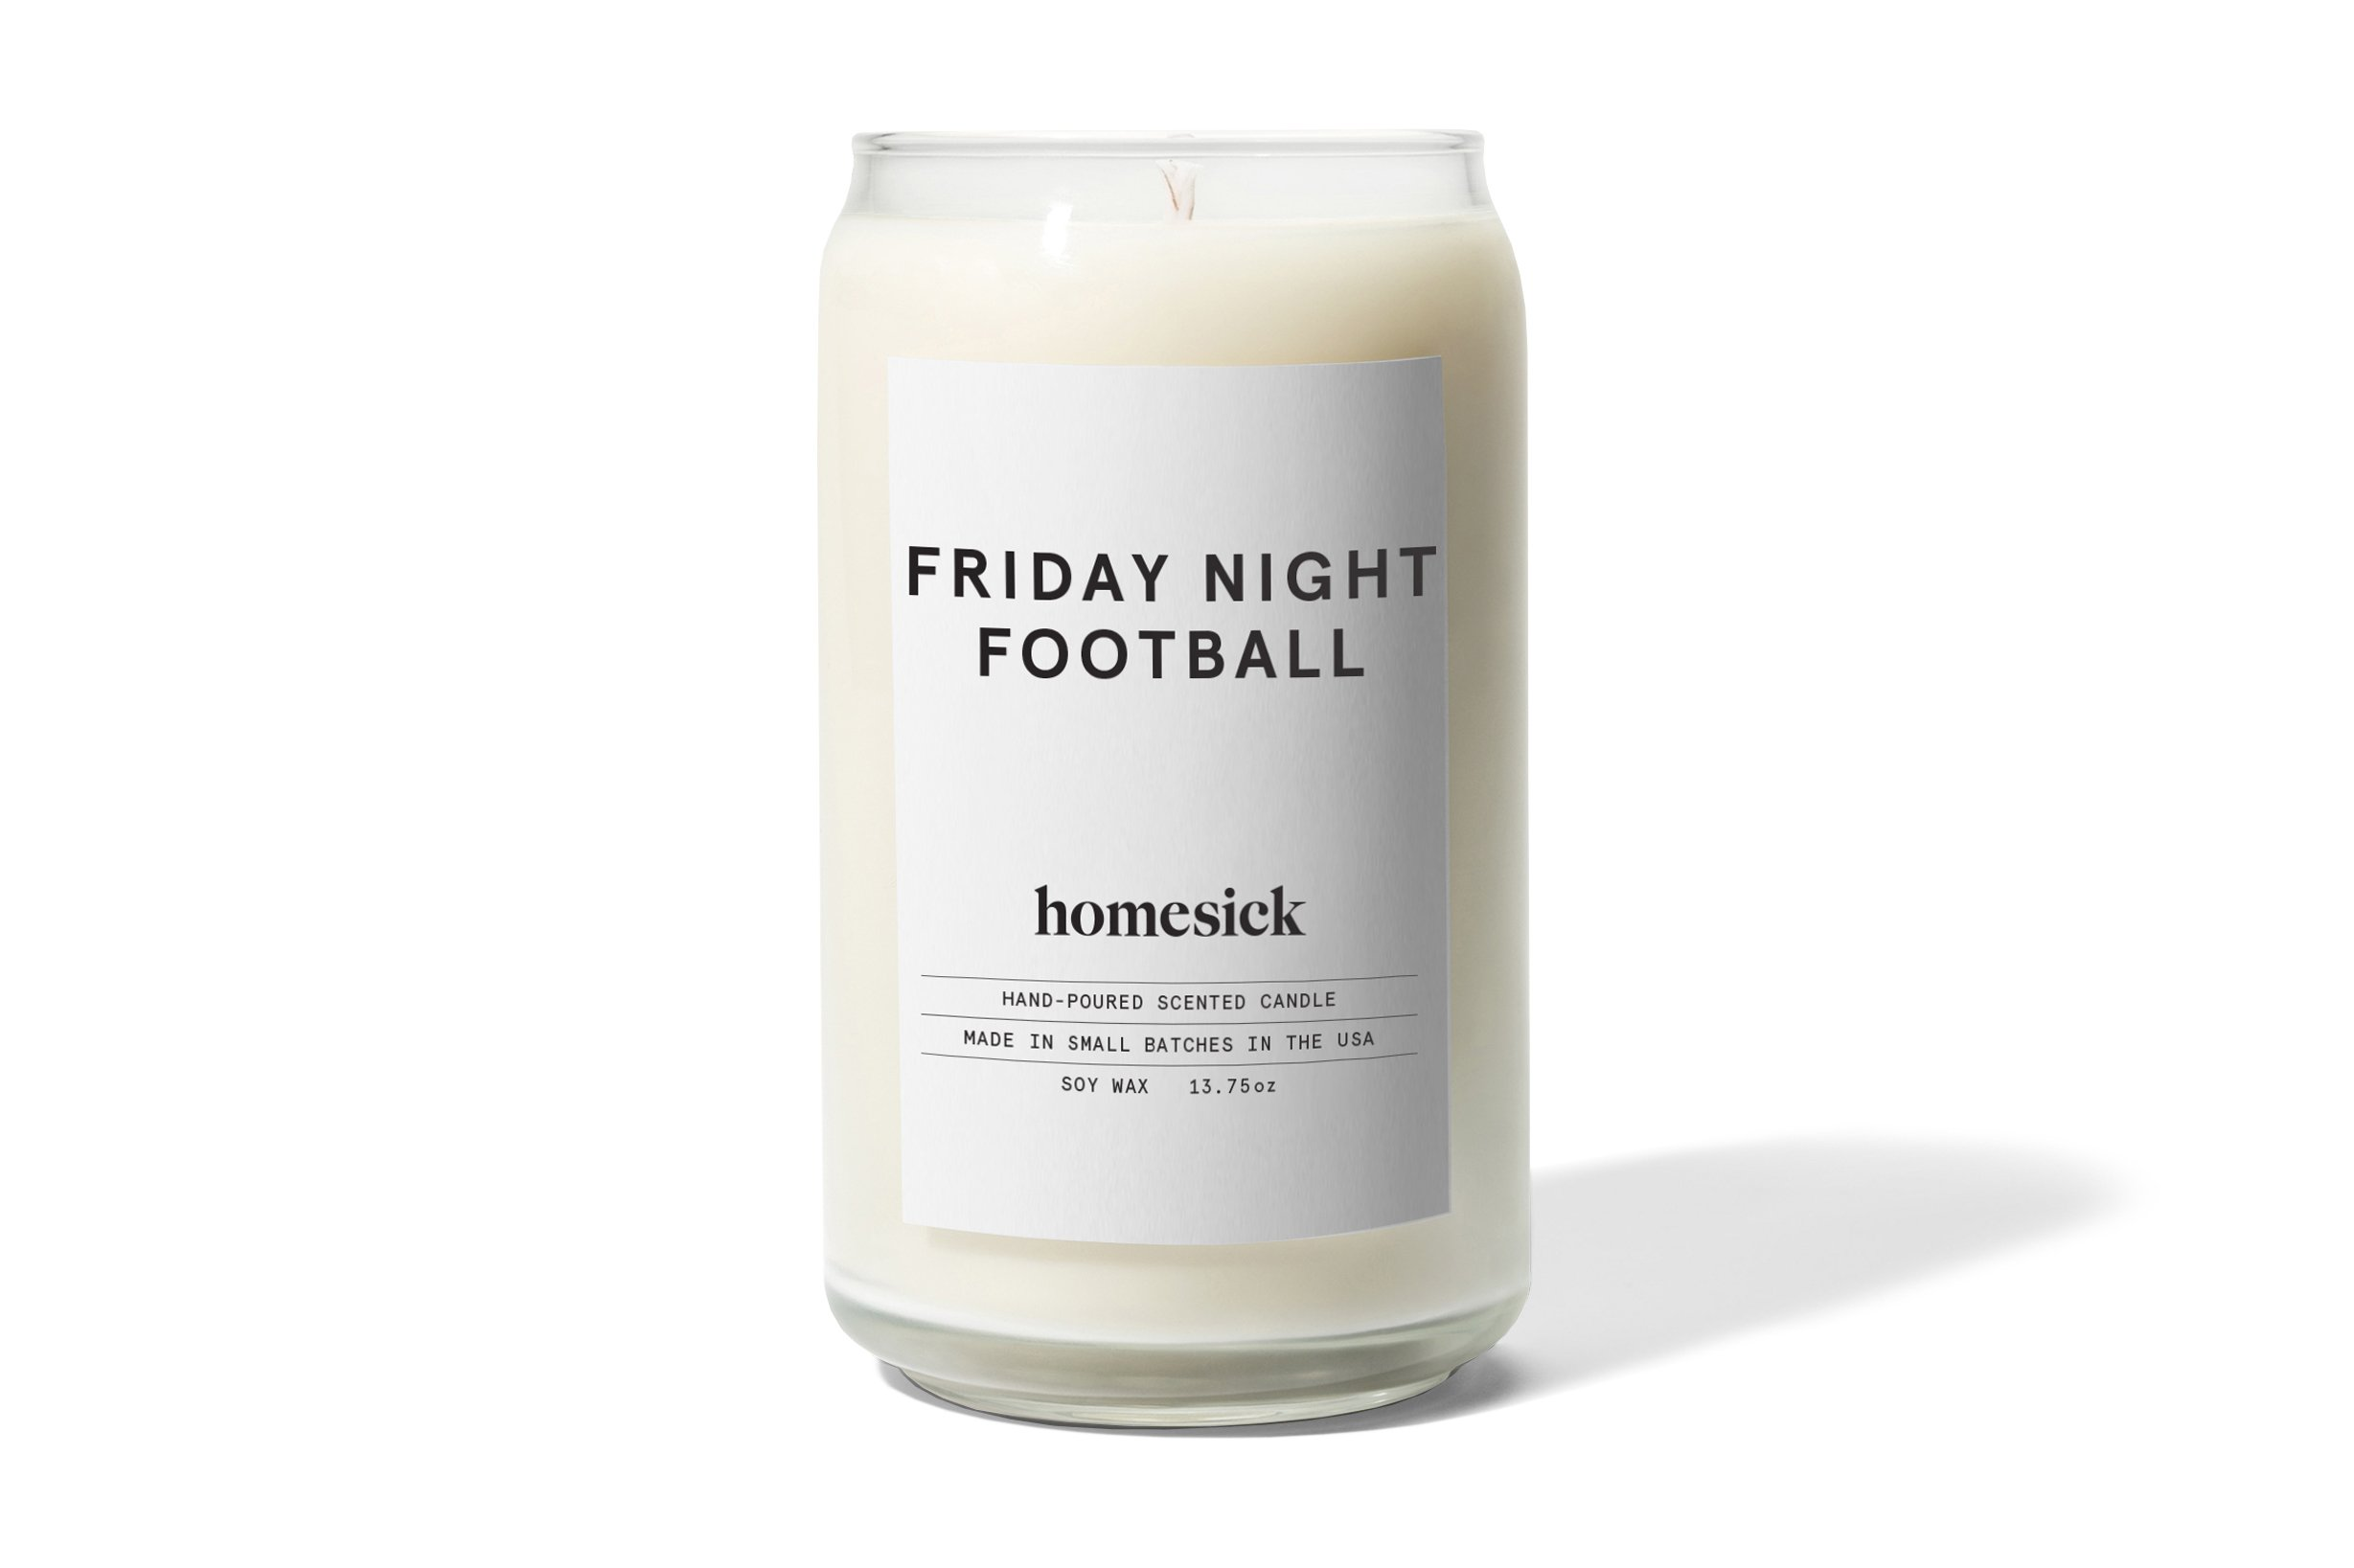 Homesick Scented Candle, Friday Night - Scents of leather cleats on freshly cut grass. Concession stand treats and refreshments. Cool fall air with hint of football player. Ingredients - The mid notes are Popcorn, Cedar wood, Sweat while the base notes are dirt and musk 60-80 hour burn time All natural soy wax - living-room-decor, living-room, candles - 713ElJqTd7L -